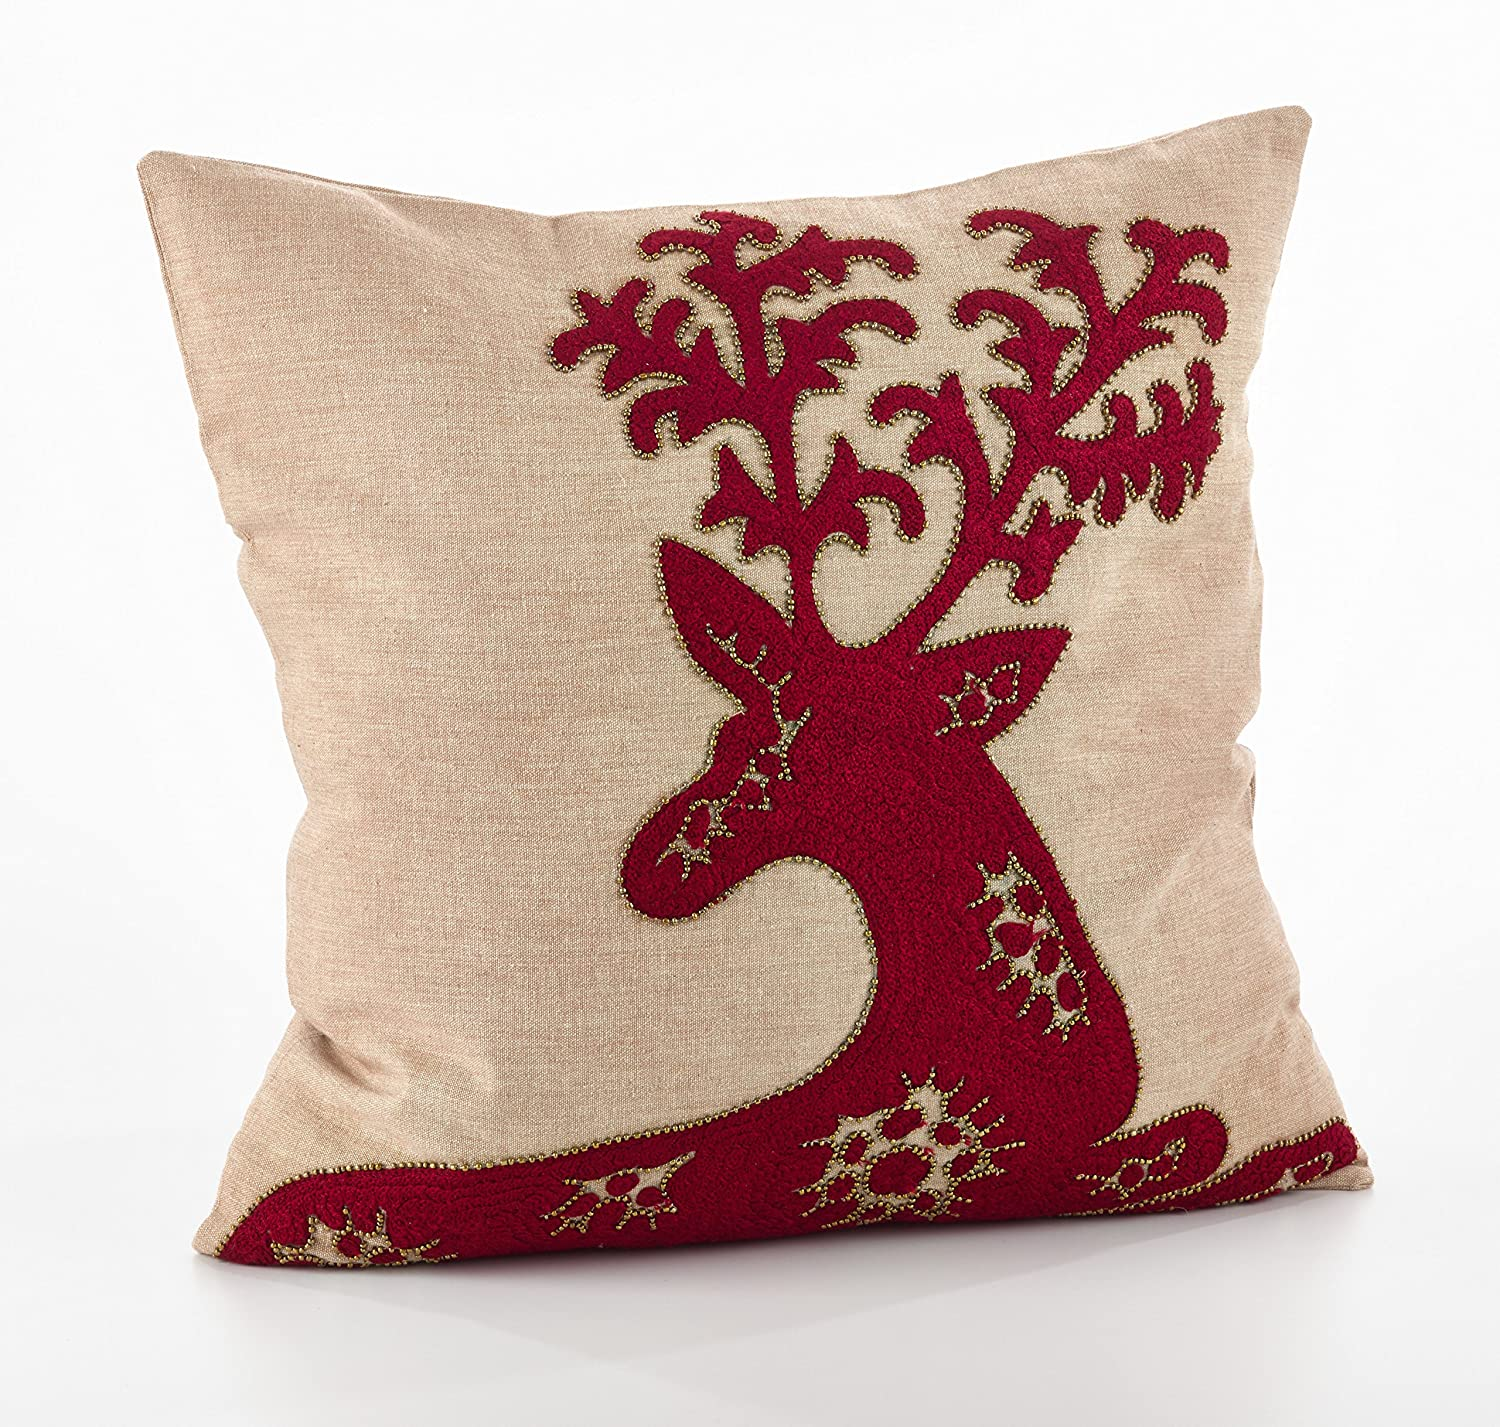 Fennco Styles Embroidered Deer Design Pillows  18  Square